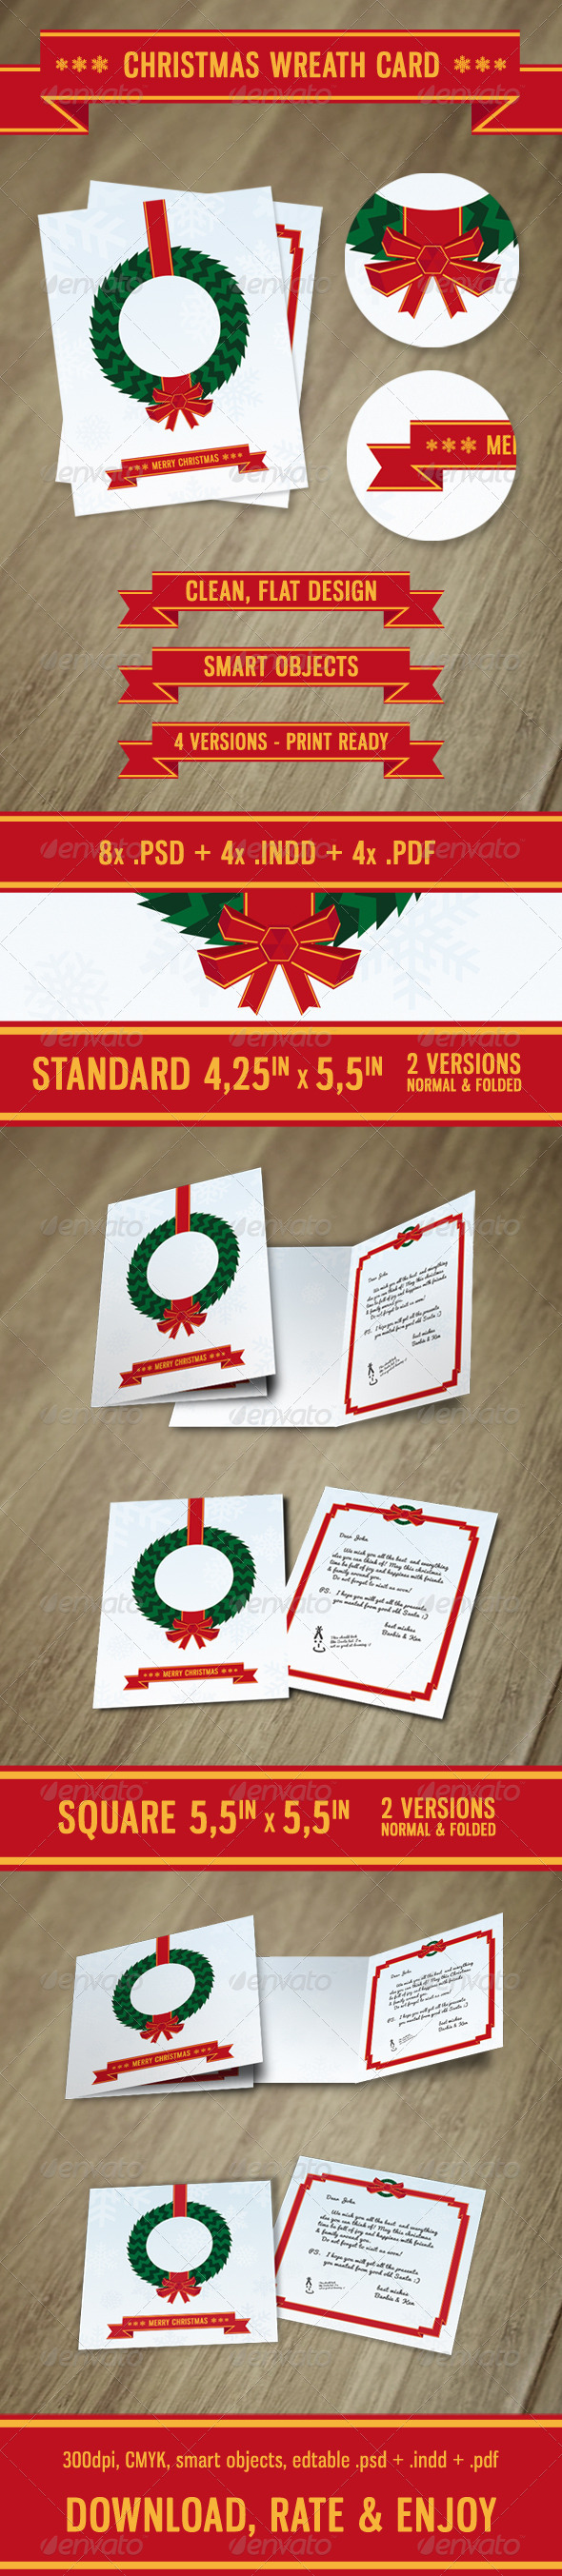 Christmas Wreath Card - Holiday Greeting Cards